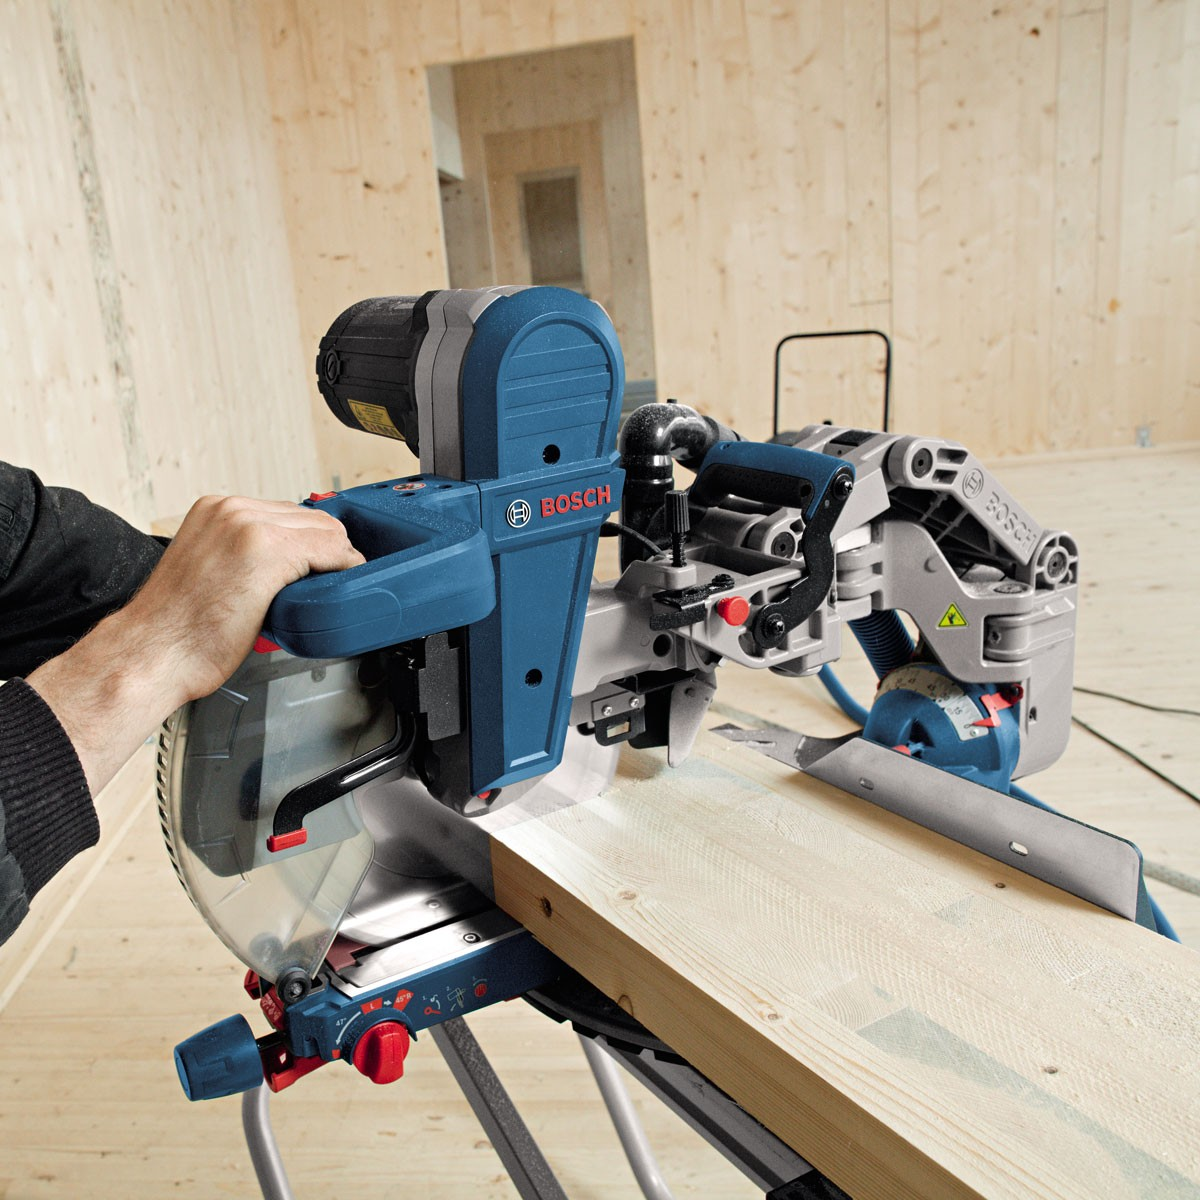 bosch gcm 12 gdl 12 double bevel glide professional mitre saw powertool world. Black Bedroom Furniture Sets. Home Design Ideas